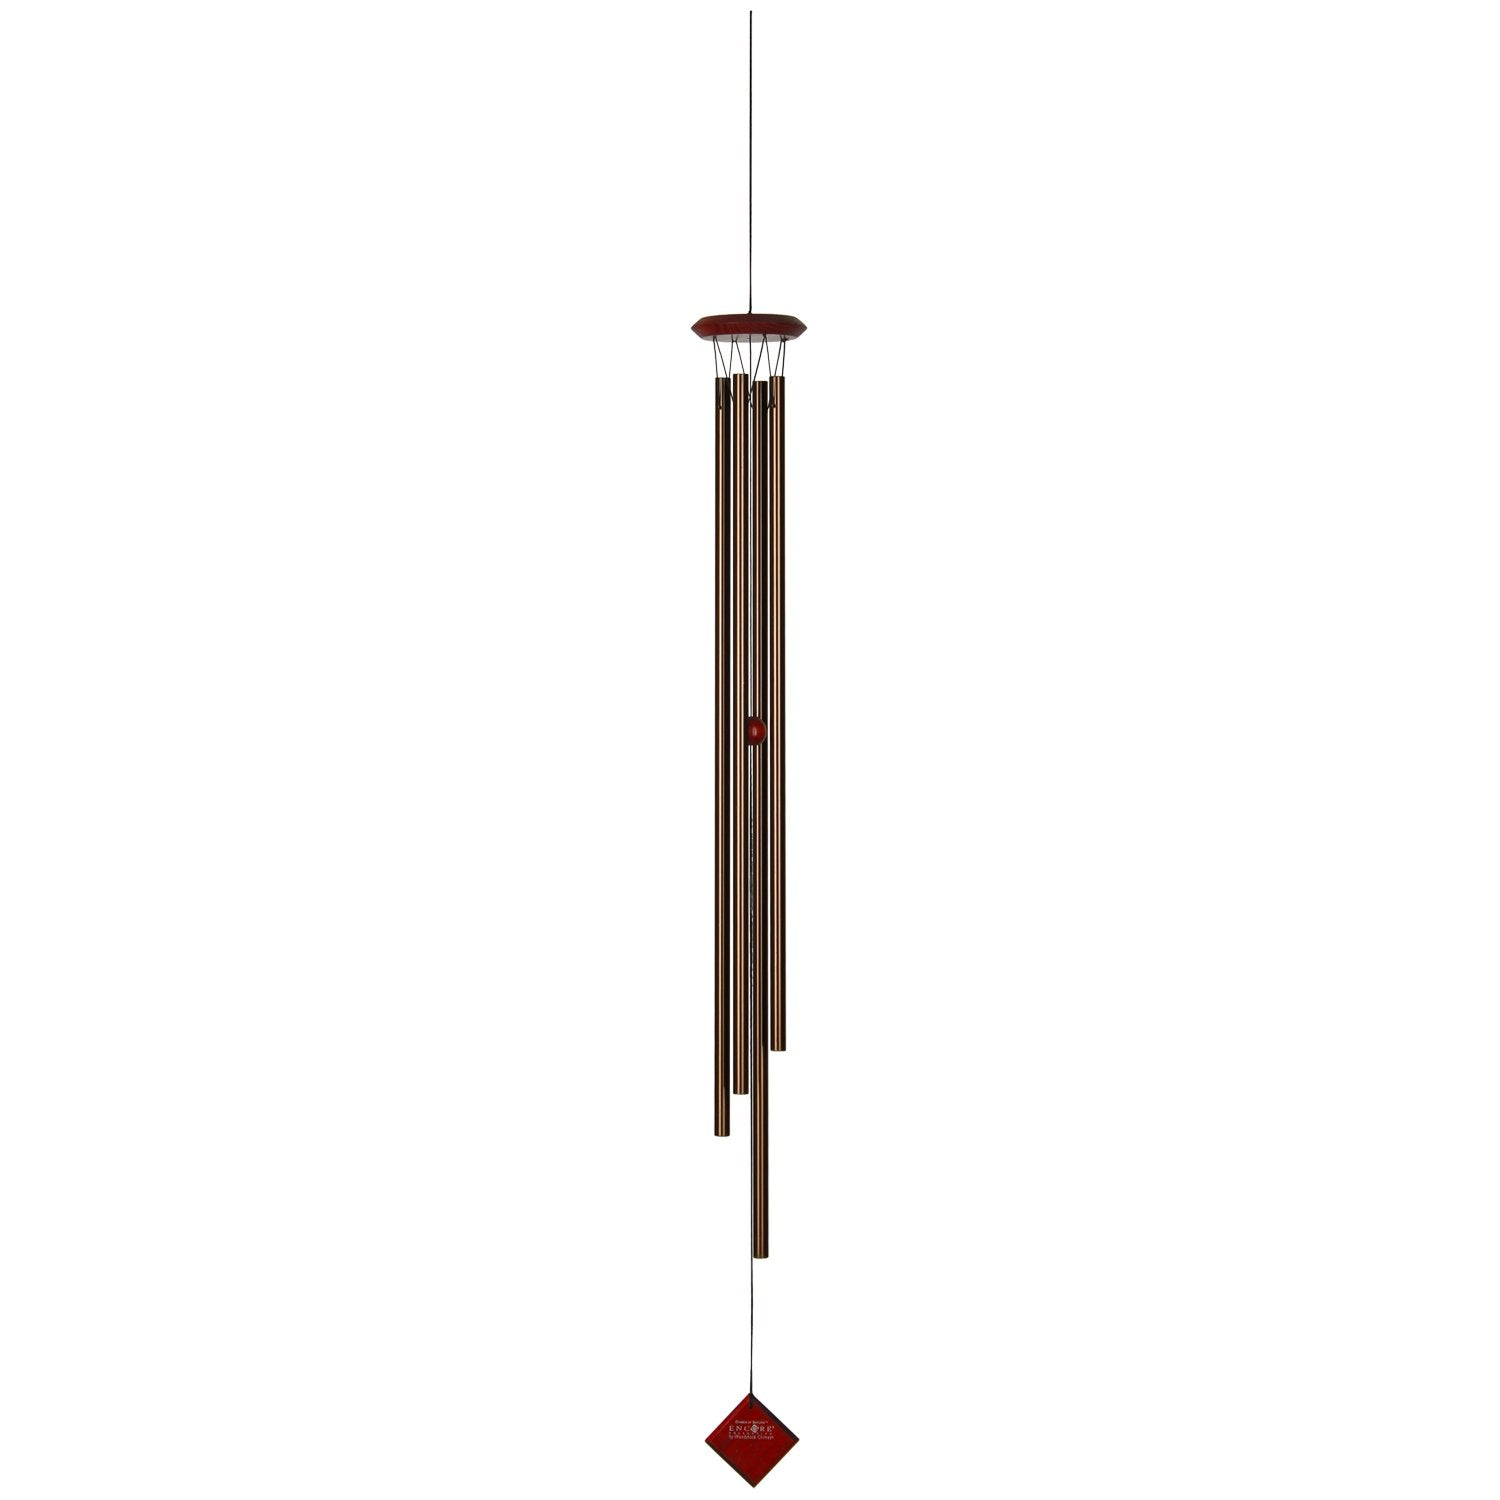 Encore Chimes of Saturn - Bronze full product image